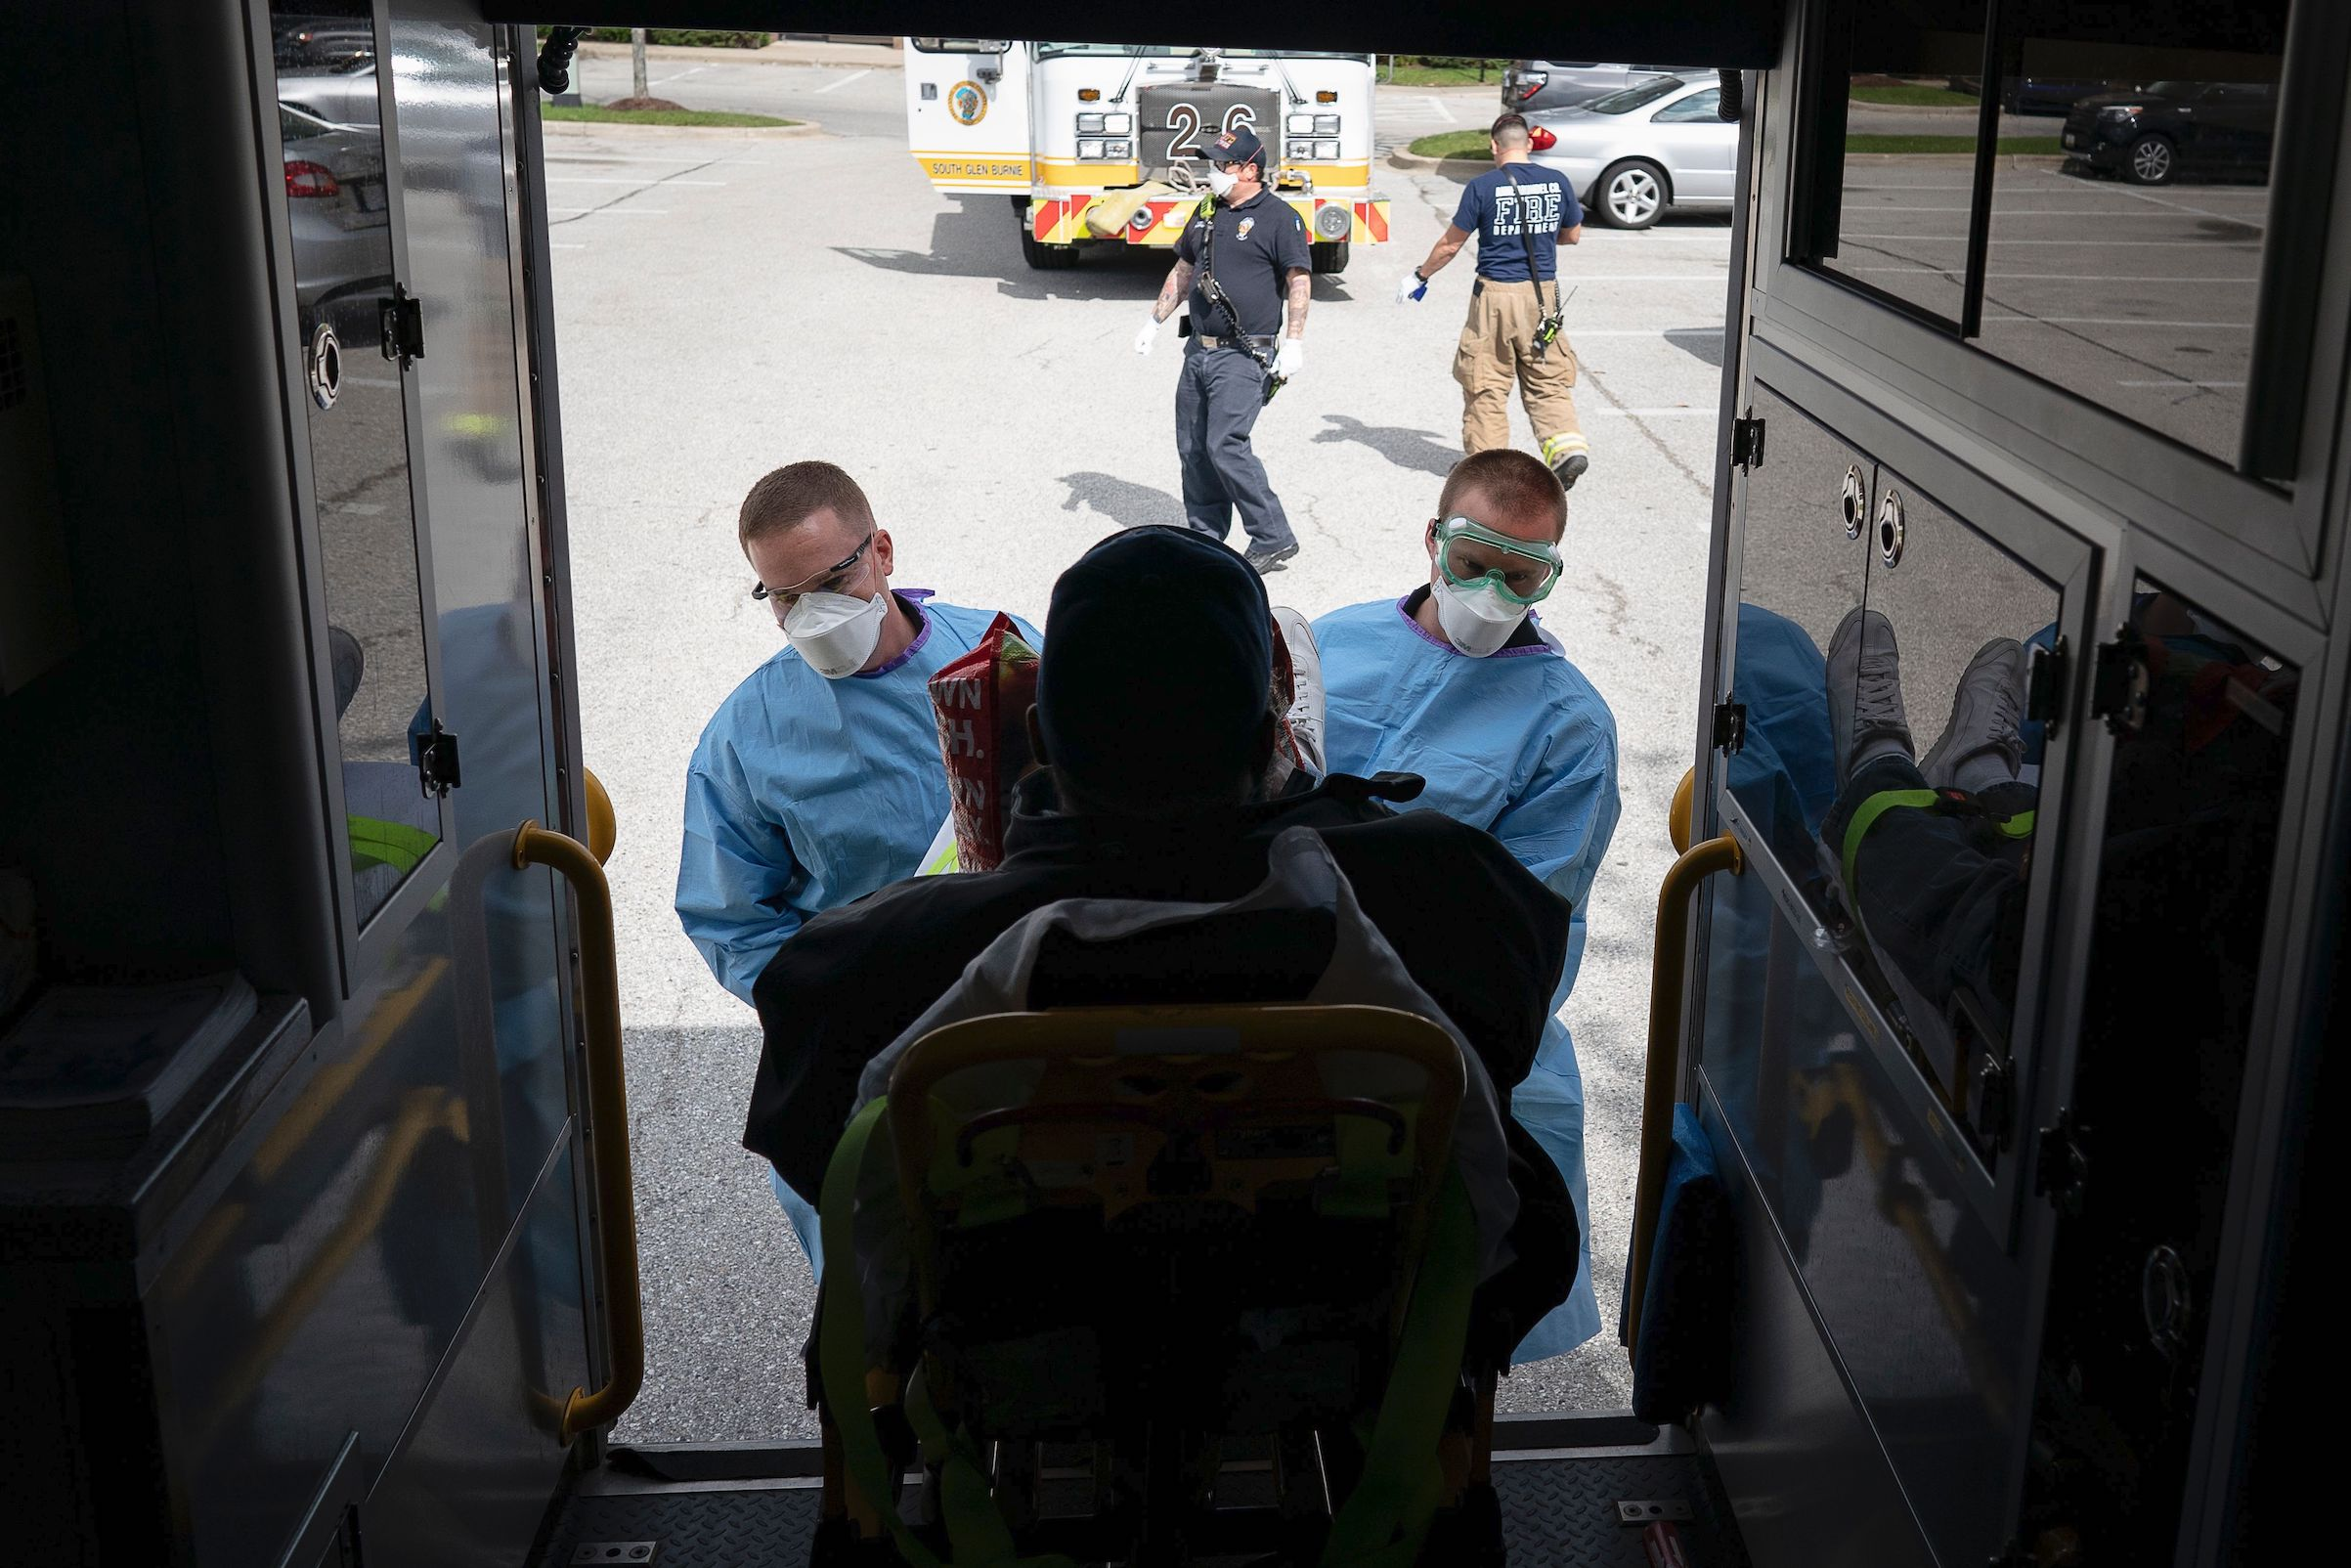 Paramedics with Anne Arundel County Fire Department load a presumptive COVID-19 patient onto the ambulance on April 21, 2020, in Glen Burnie, Md.